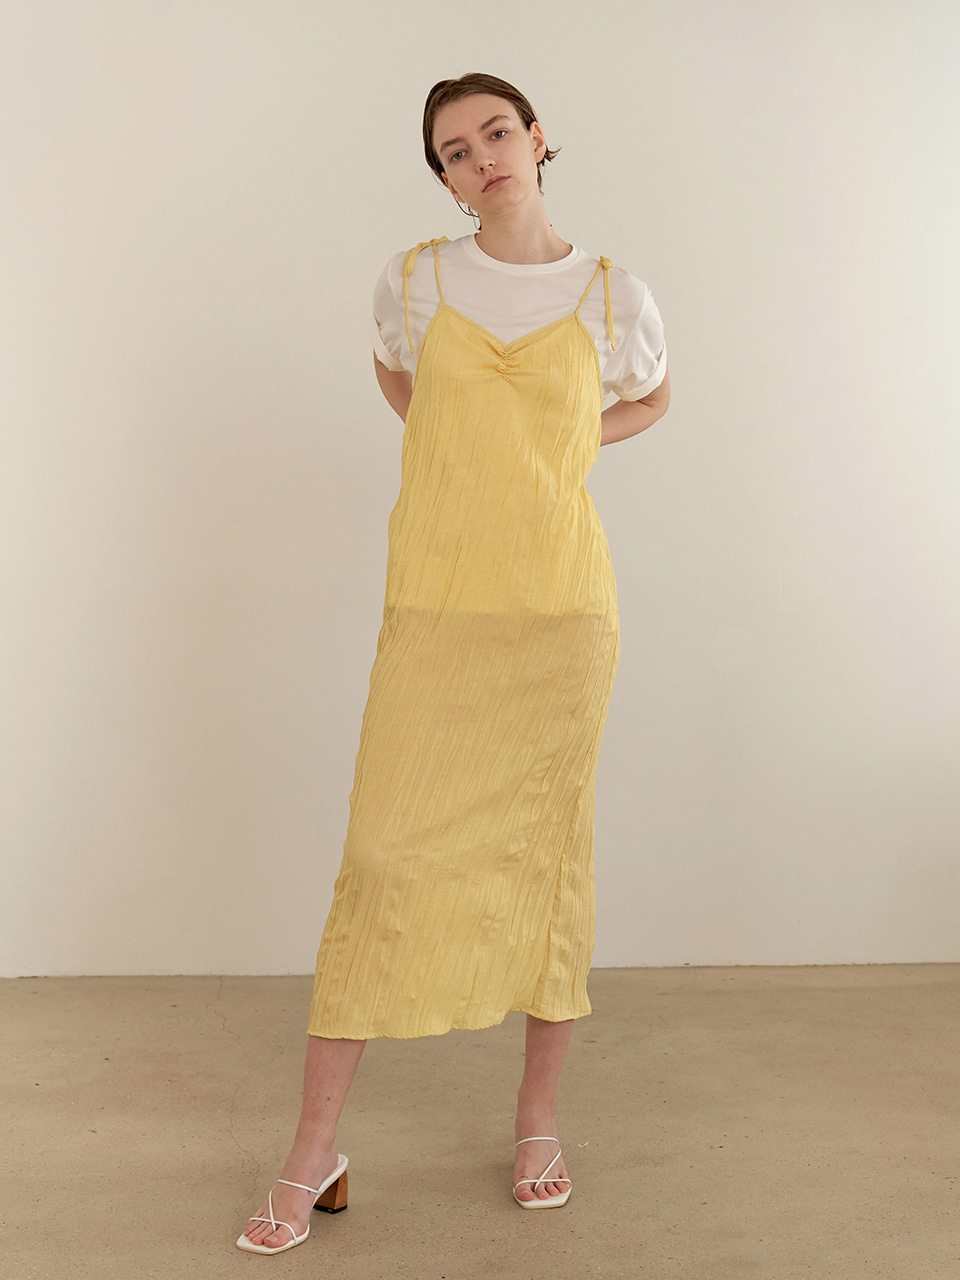 Resort wrinkle dress - yellow [5/22예약배송]